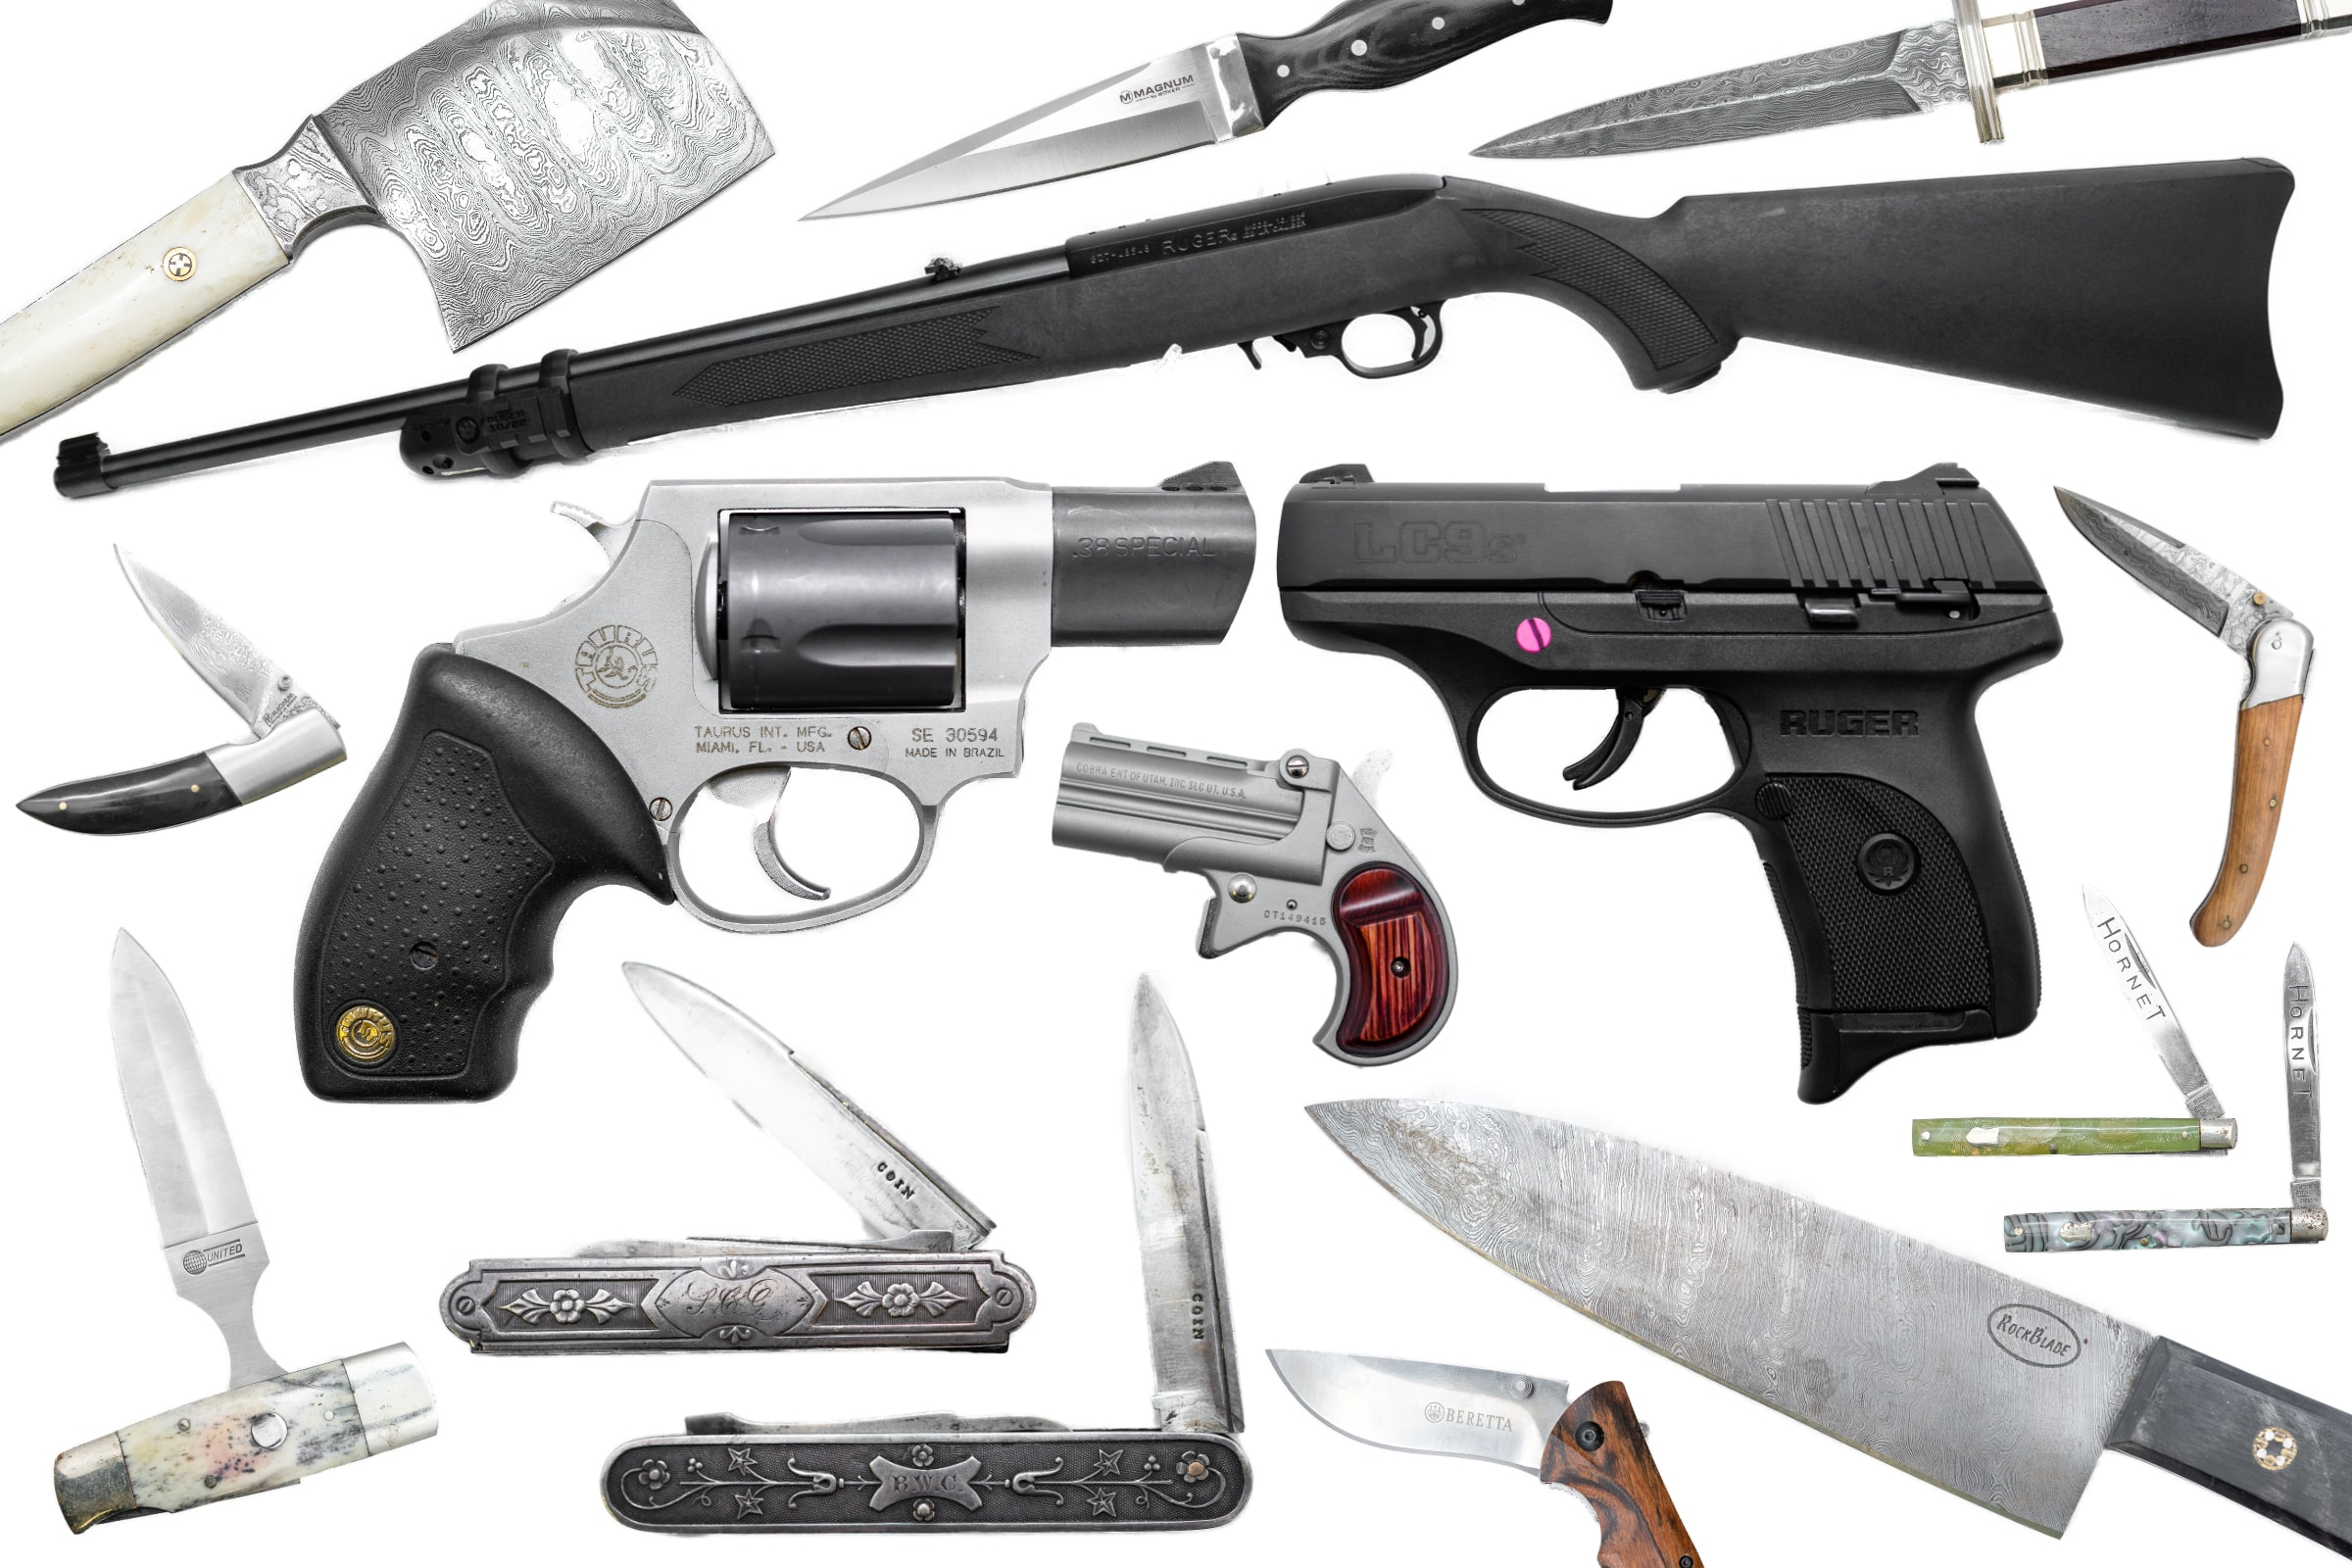 Firearm & Knife Collection Auction